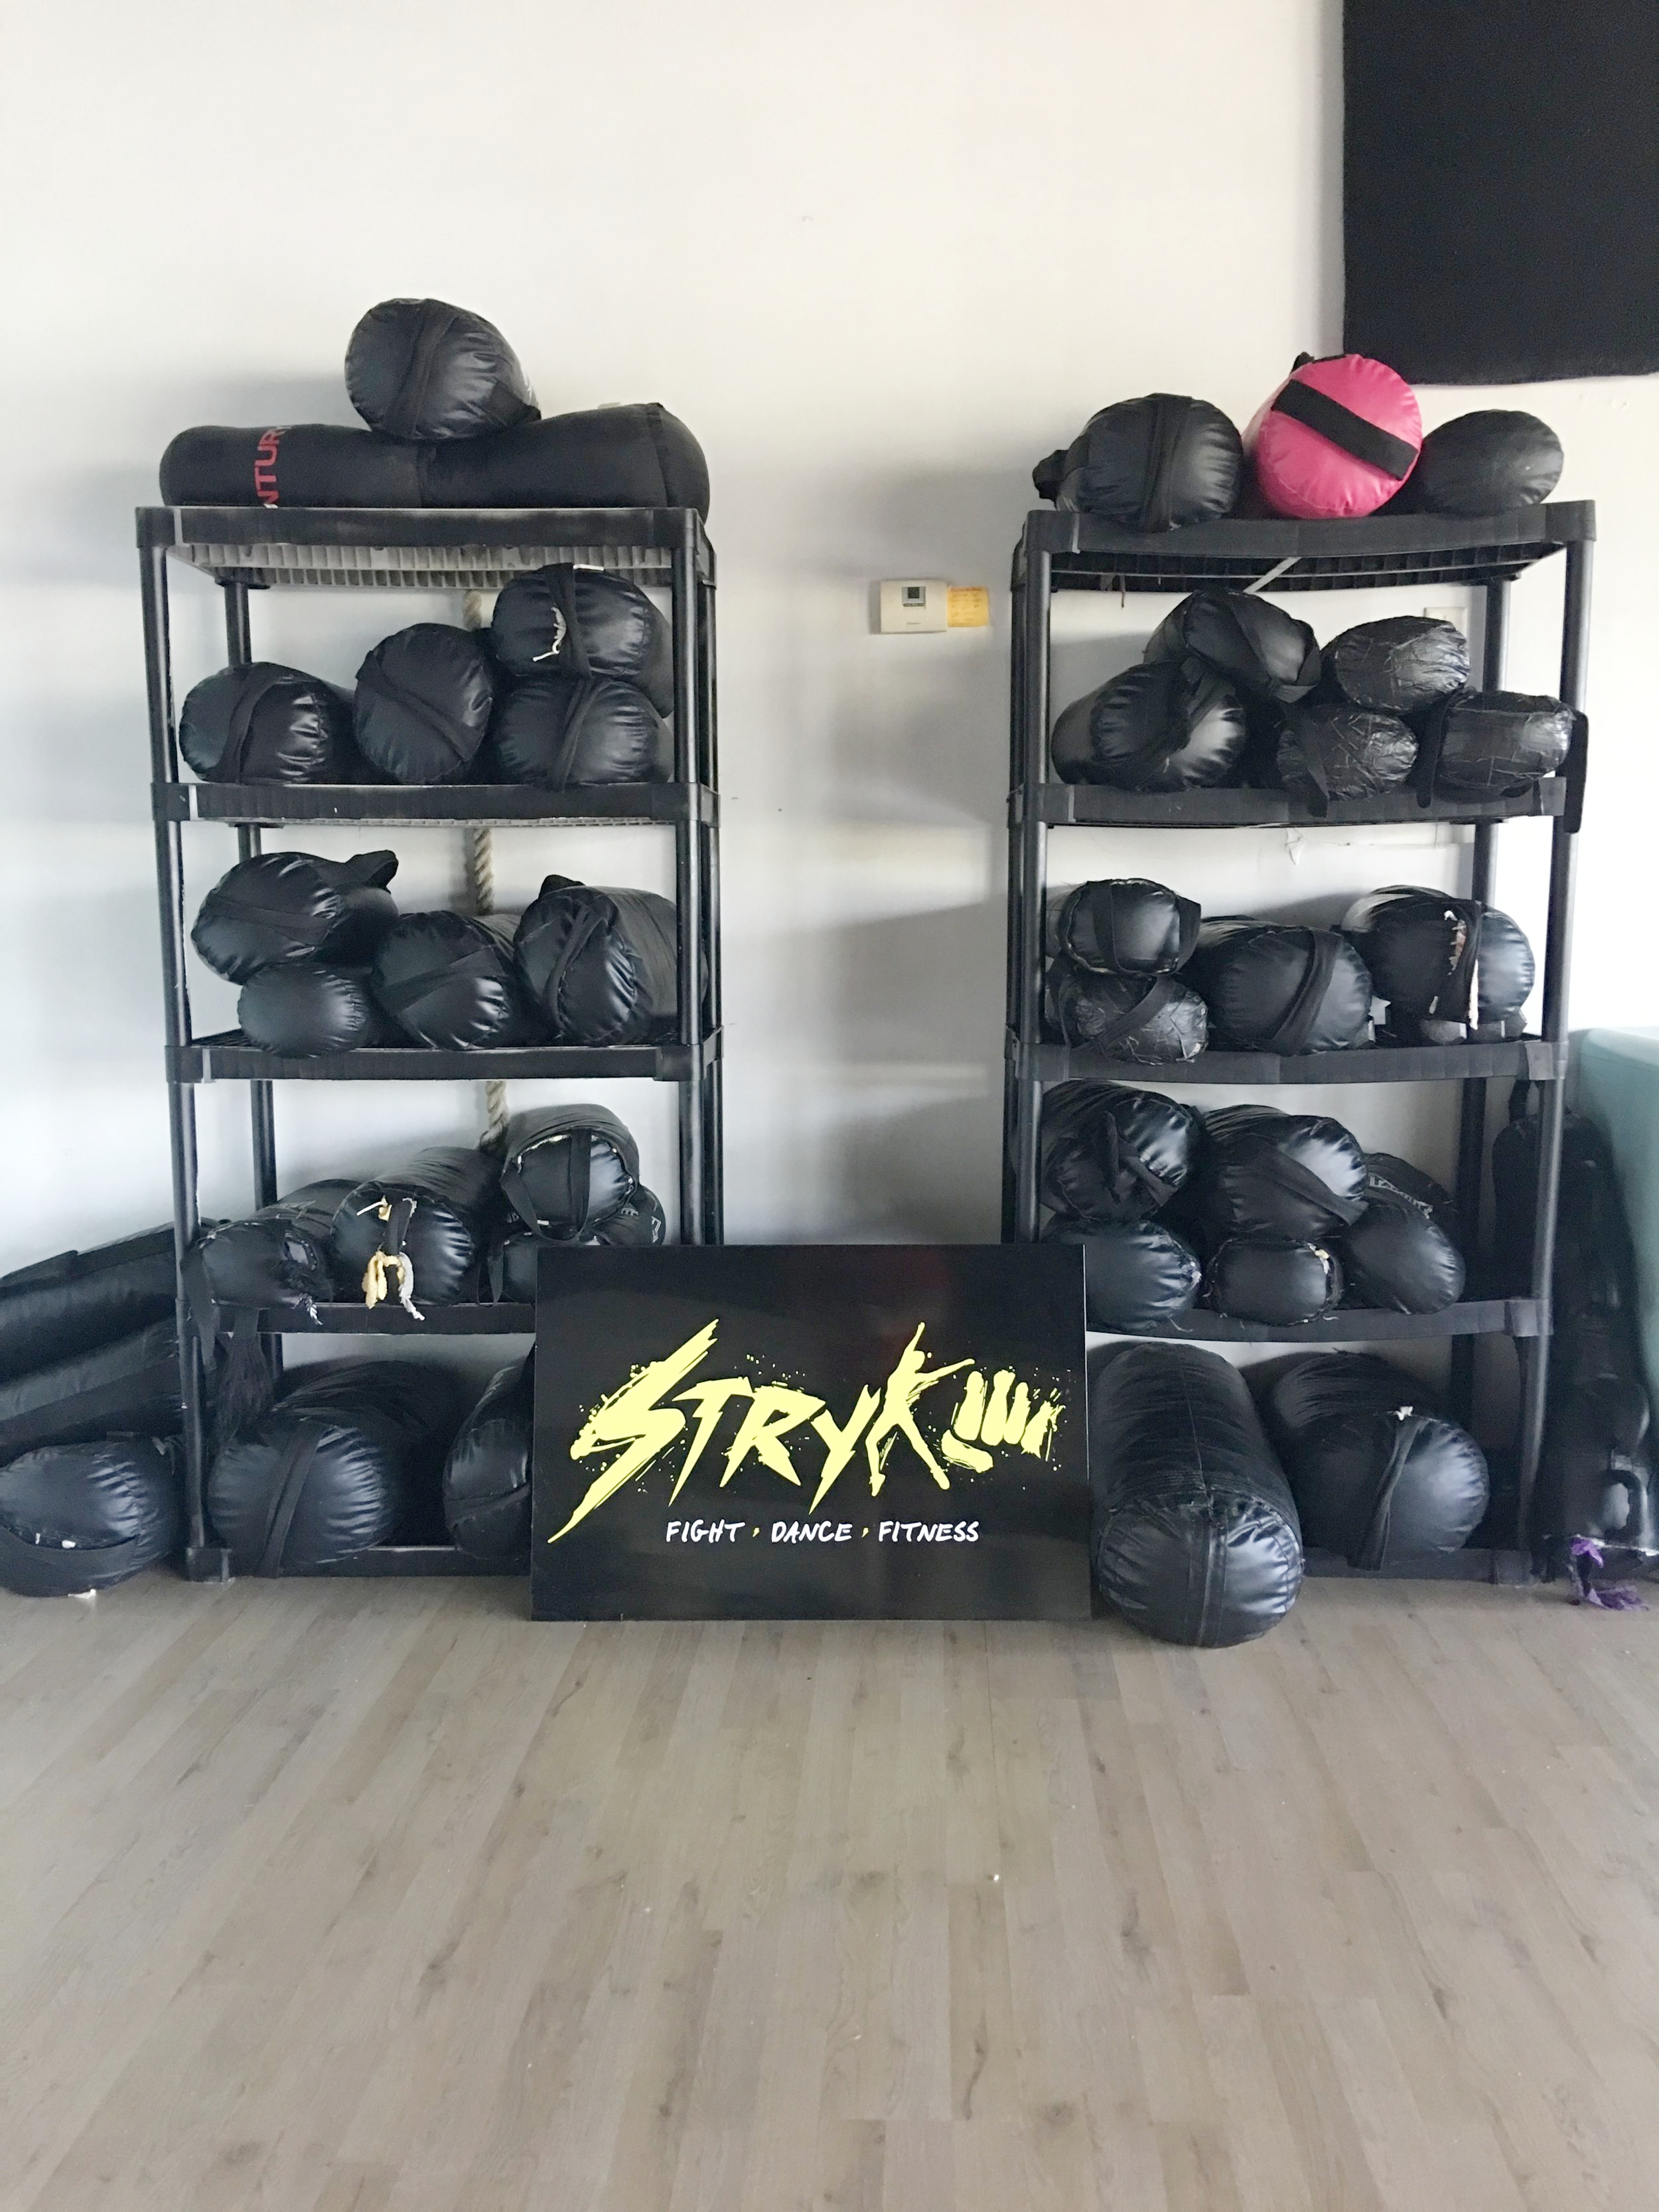 Stryke Fitness Studio Charleston SC Fight Dance Fitness Workout.JPG